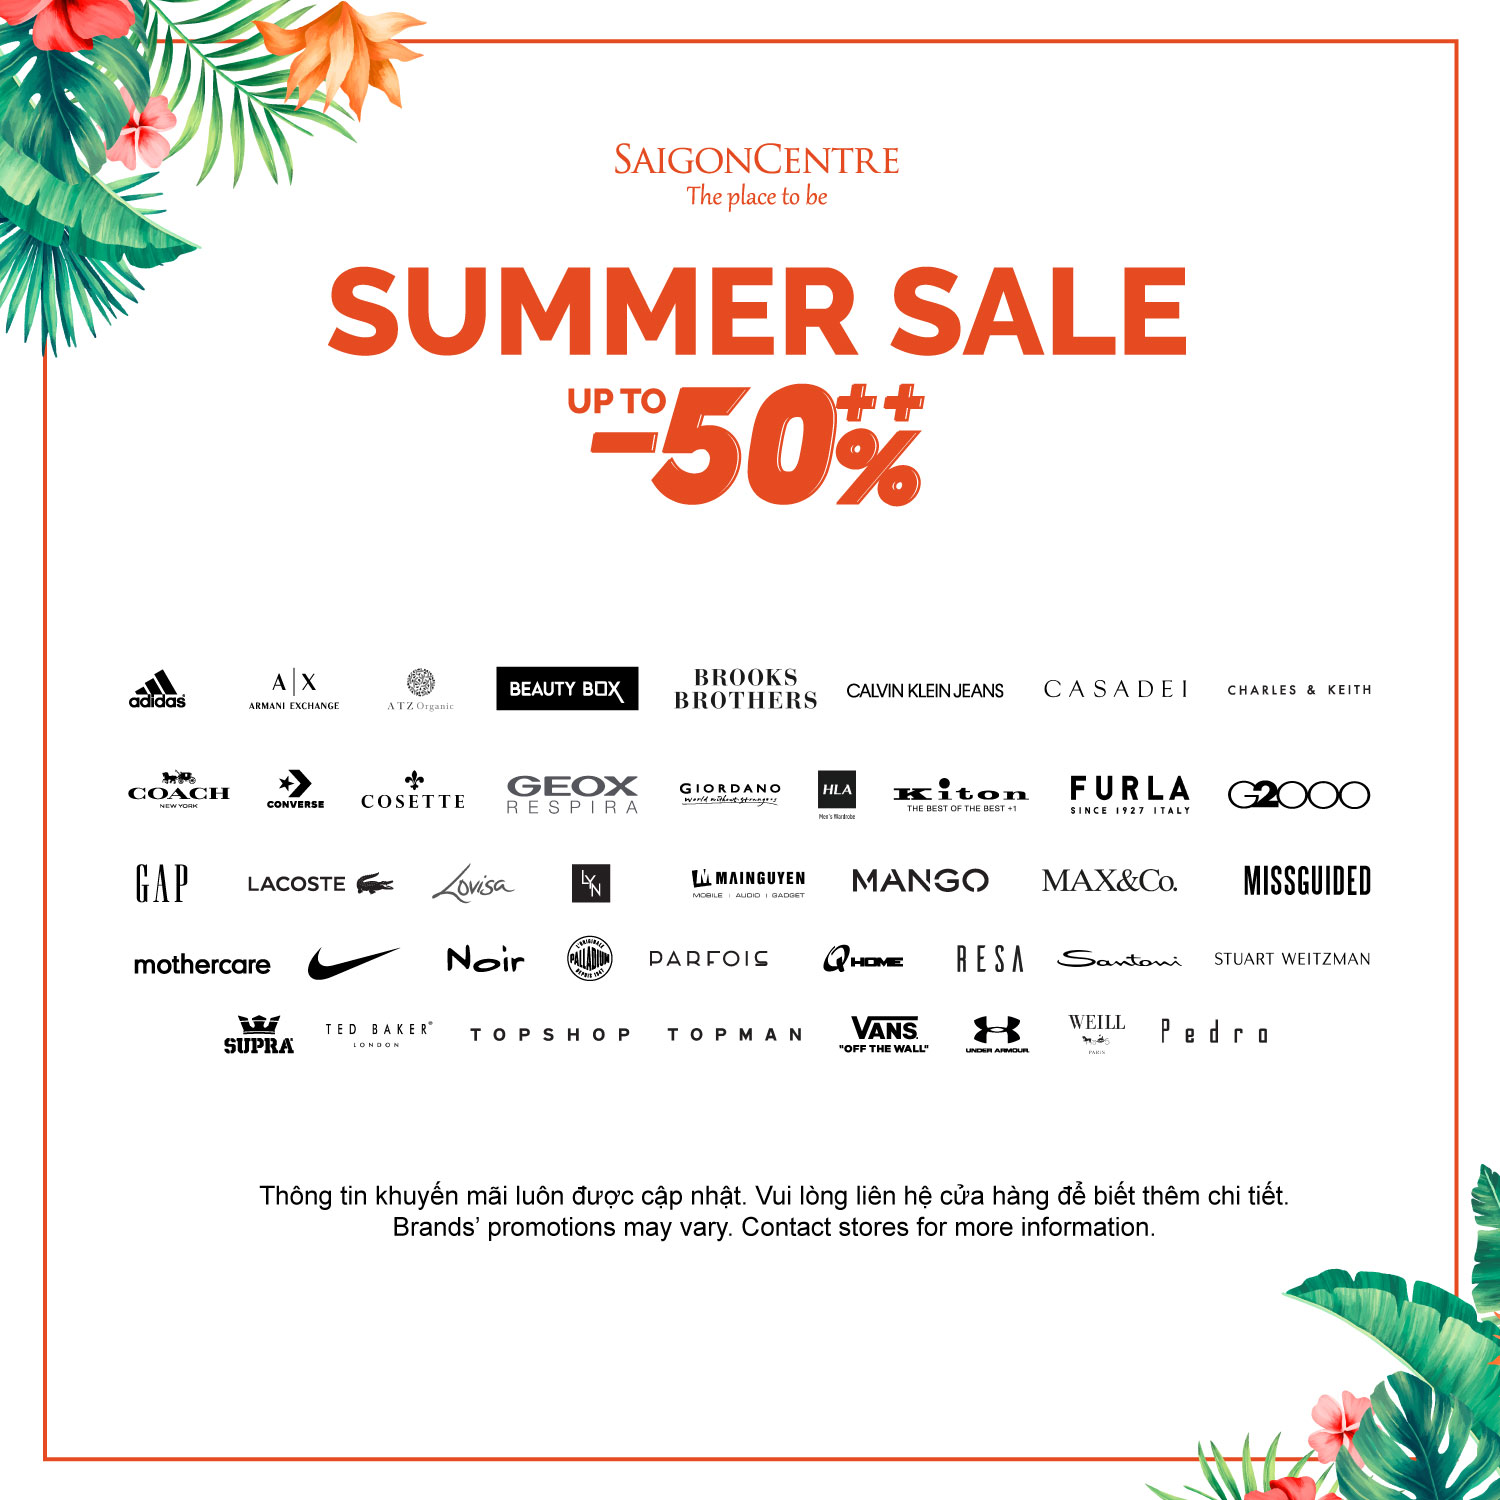 SUMMER SALE UP TO 50% AT SAIGON CENTRE